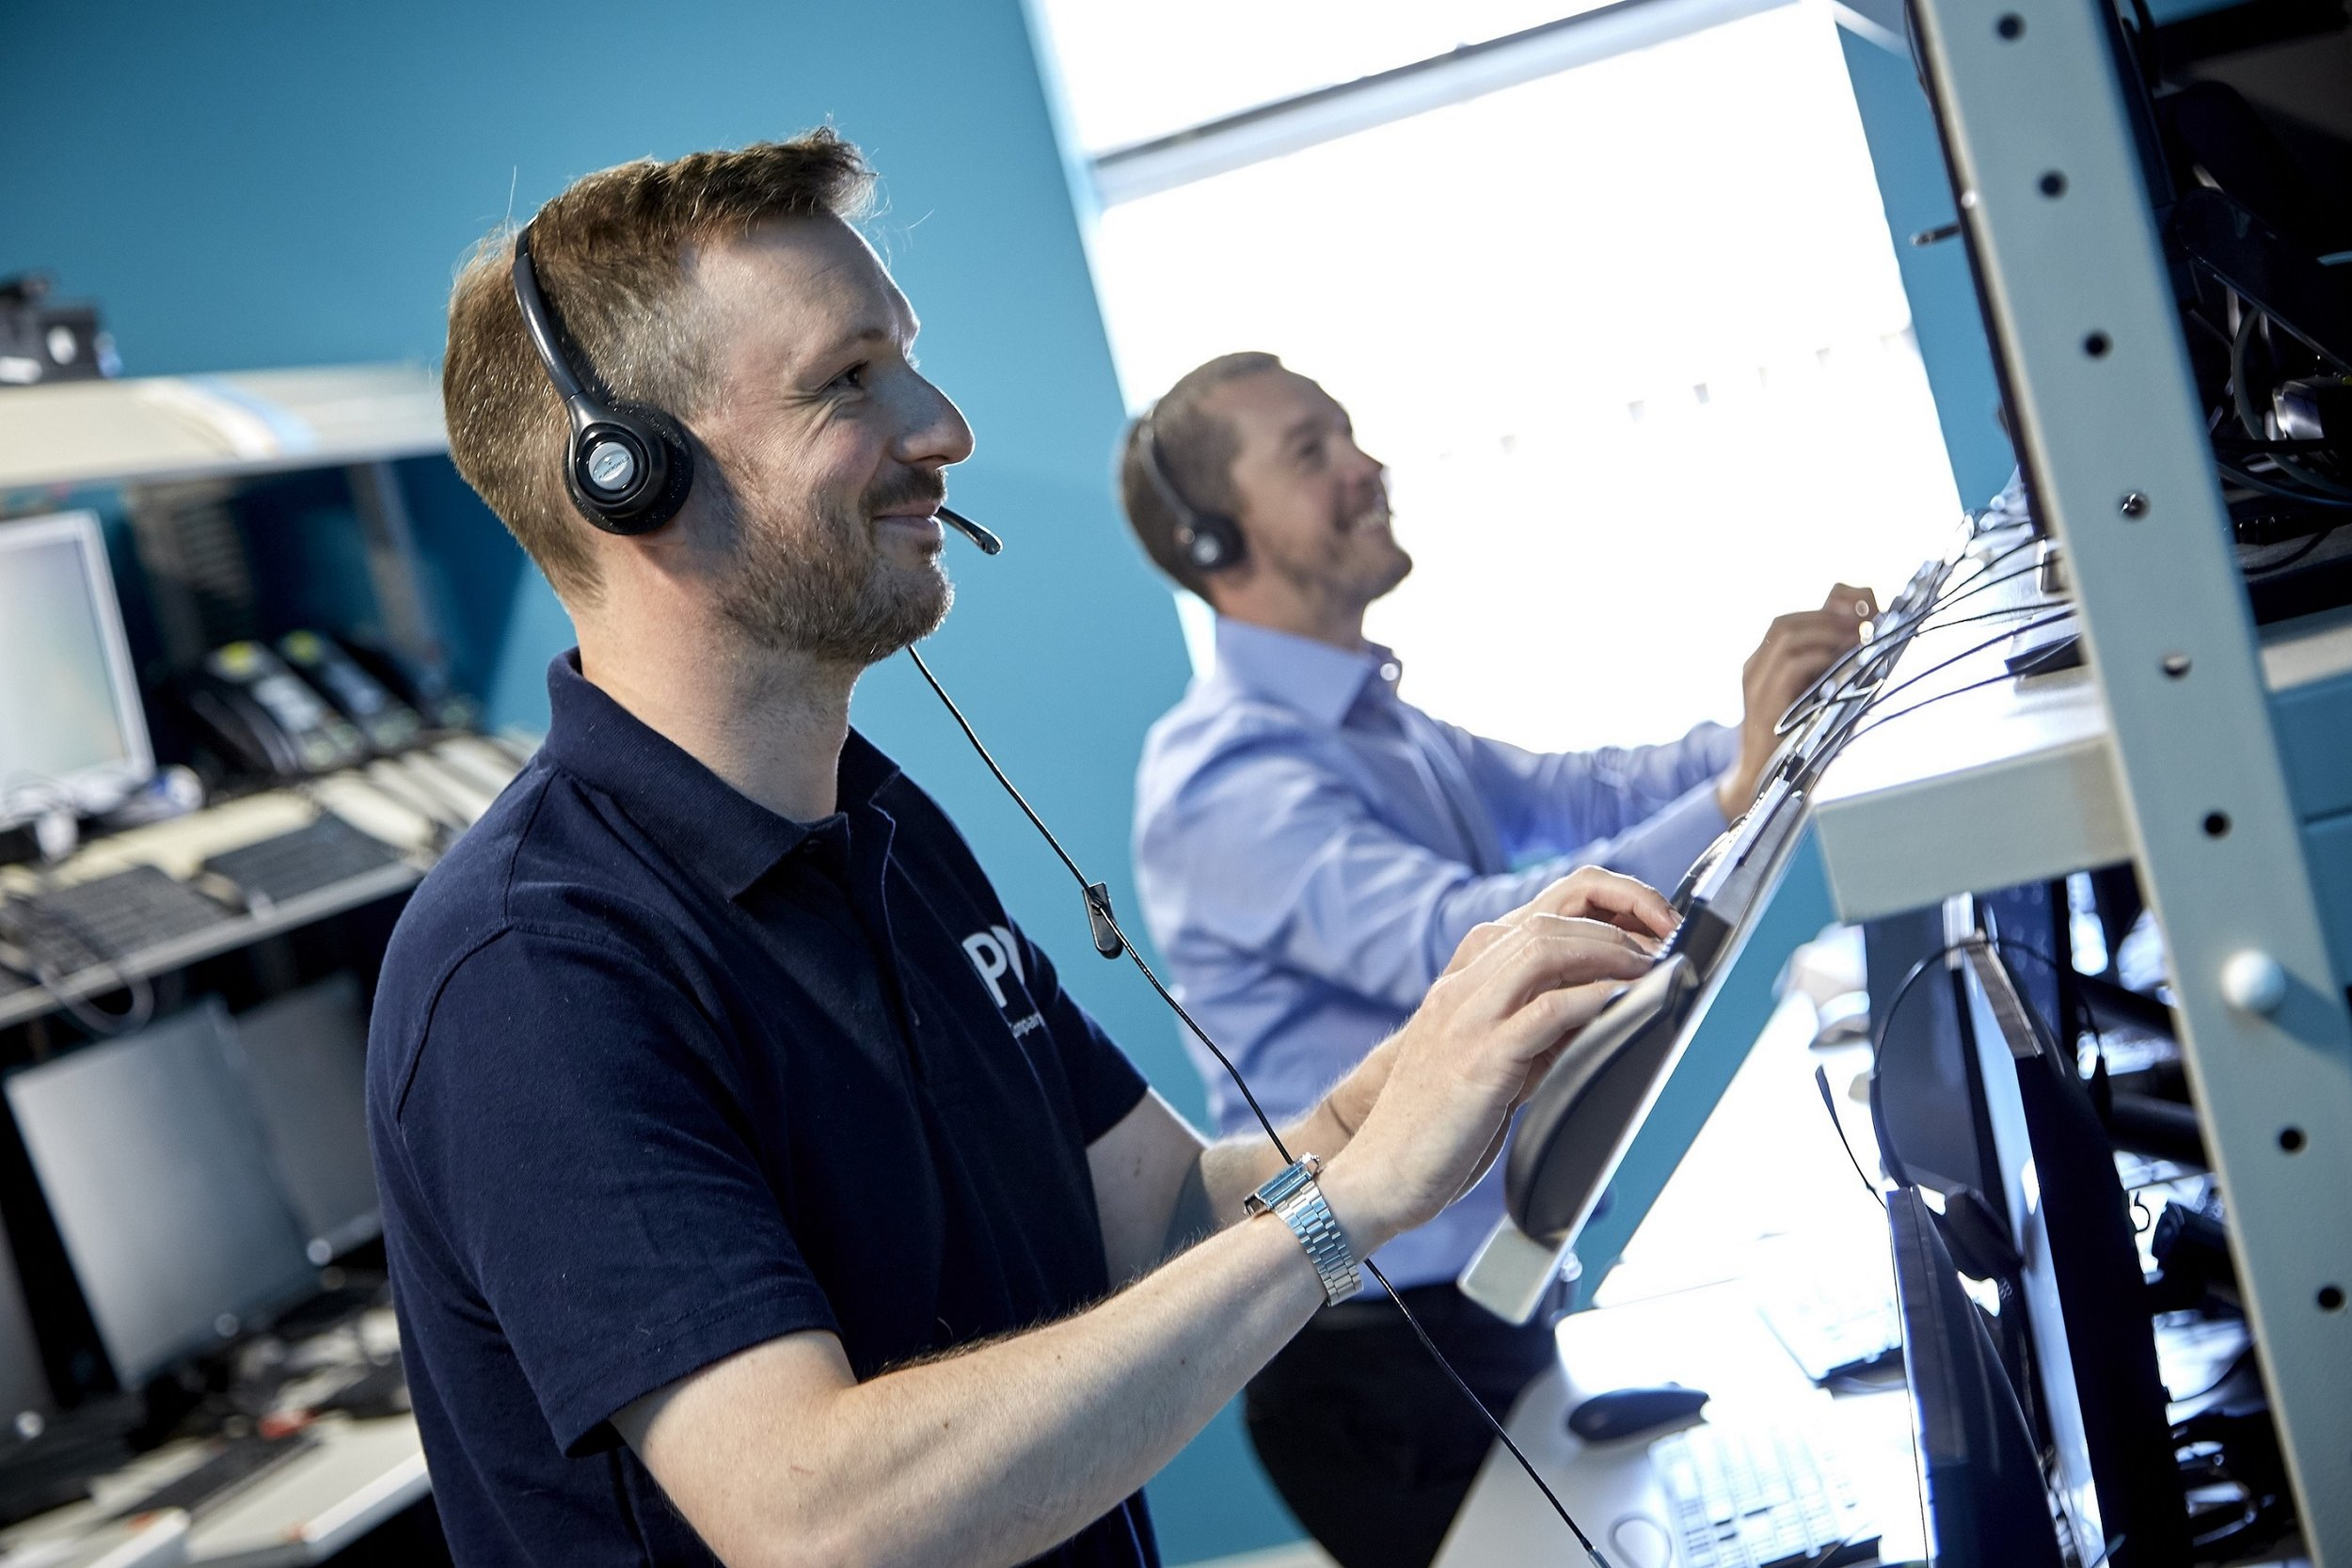 Audio Engineer James Gilby, left, and Senior Software Quality Assurance Engineer Craig Duffy in one of the labs at APD's new Minster Corner offices where systems used by customers in the UK and overseas are tested.